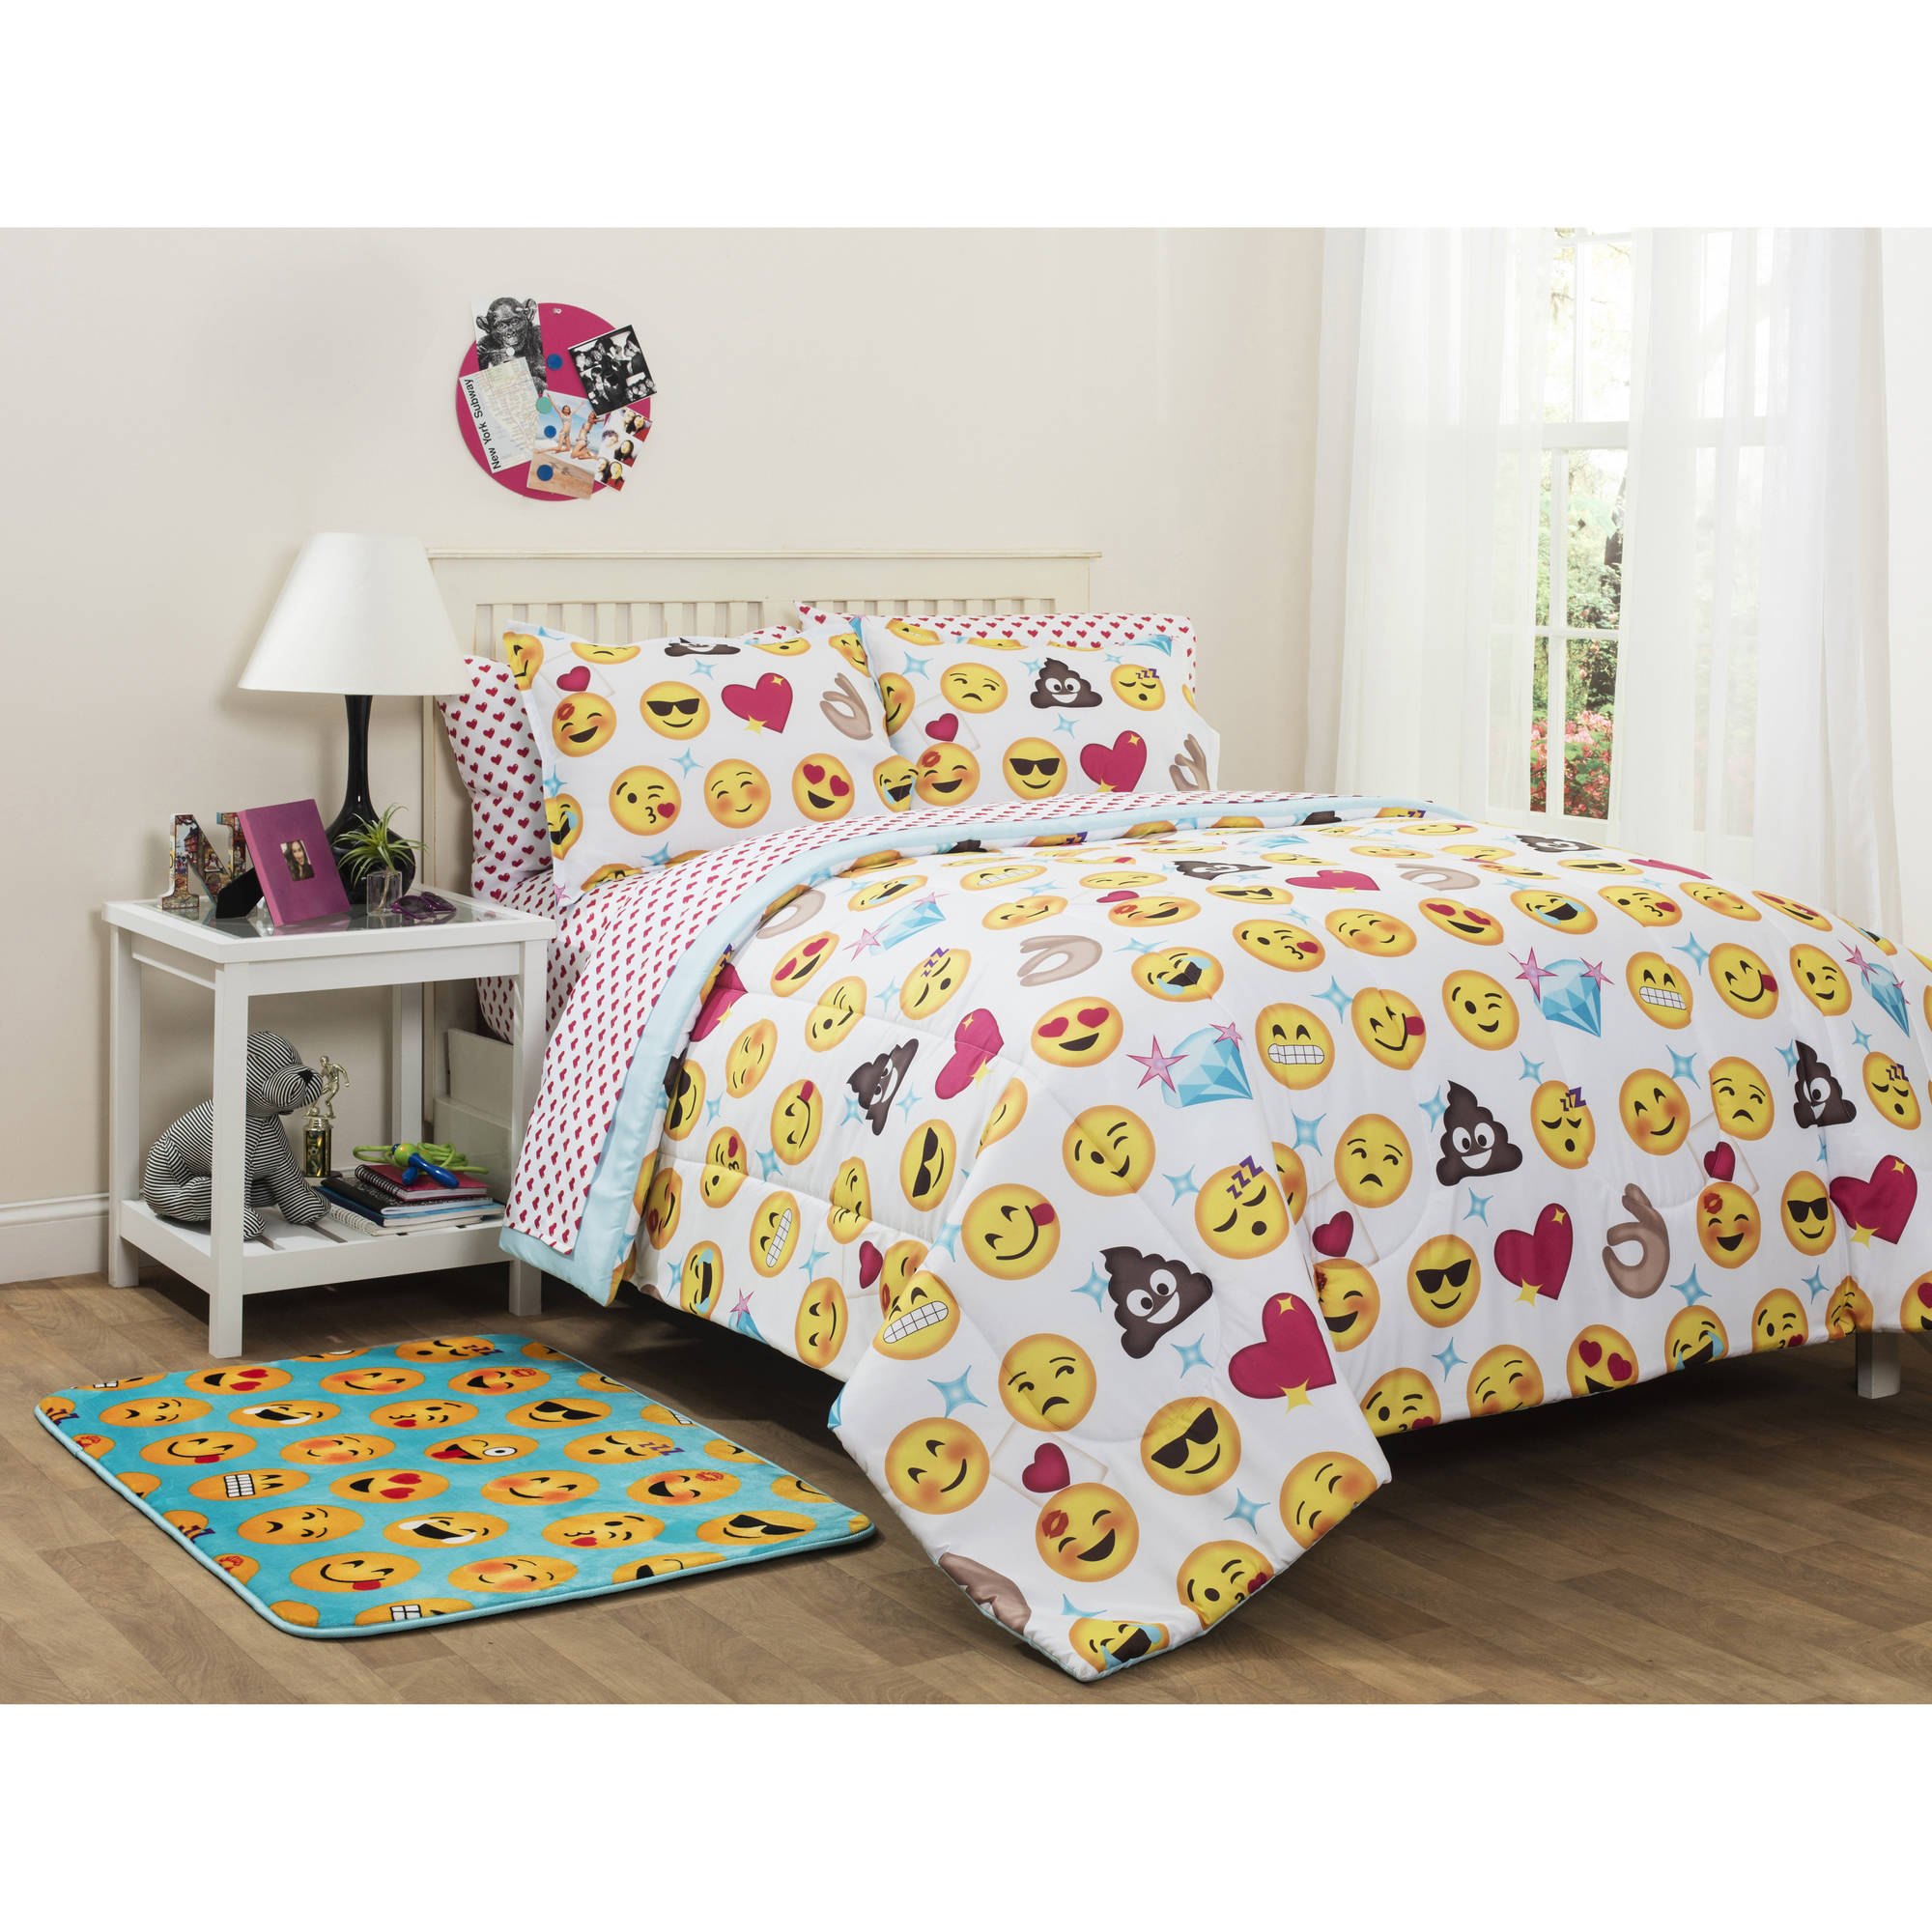 Emoji Reversible Bedding Set Twin/Twin XL Bed In A Bag Kids Room Bedroom  Decor